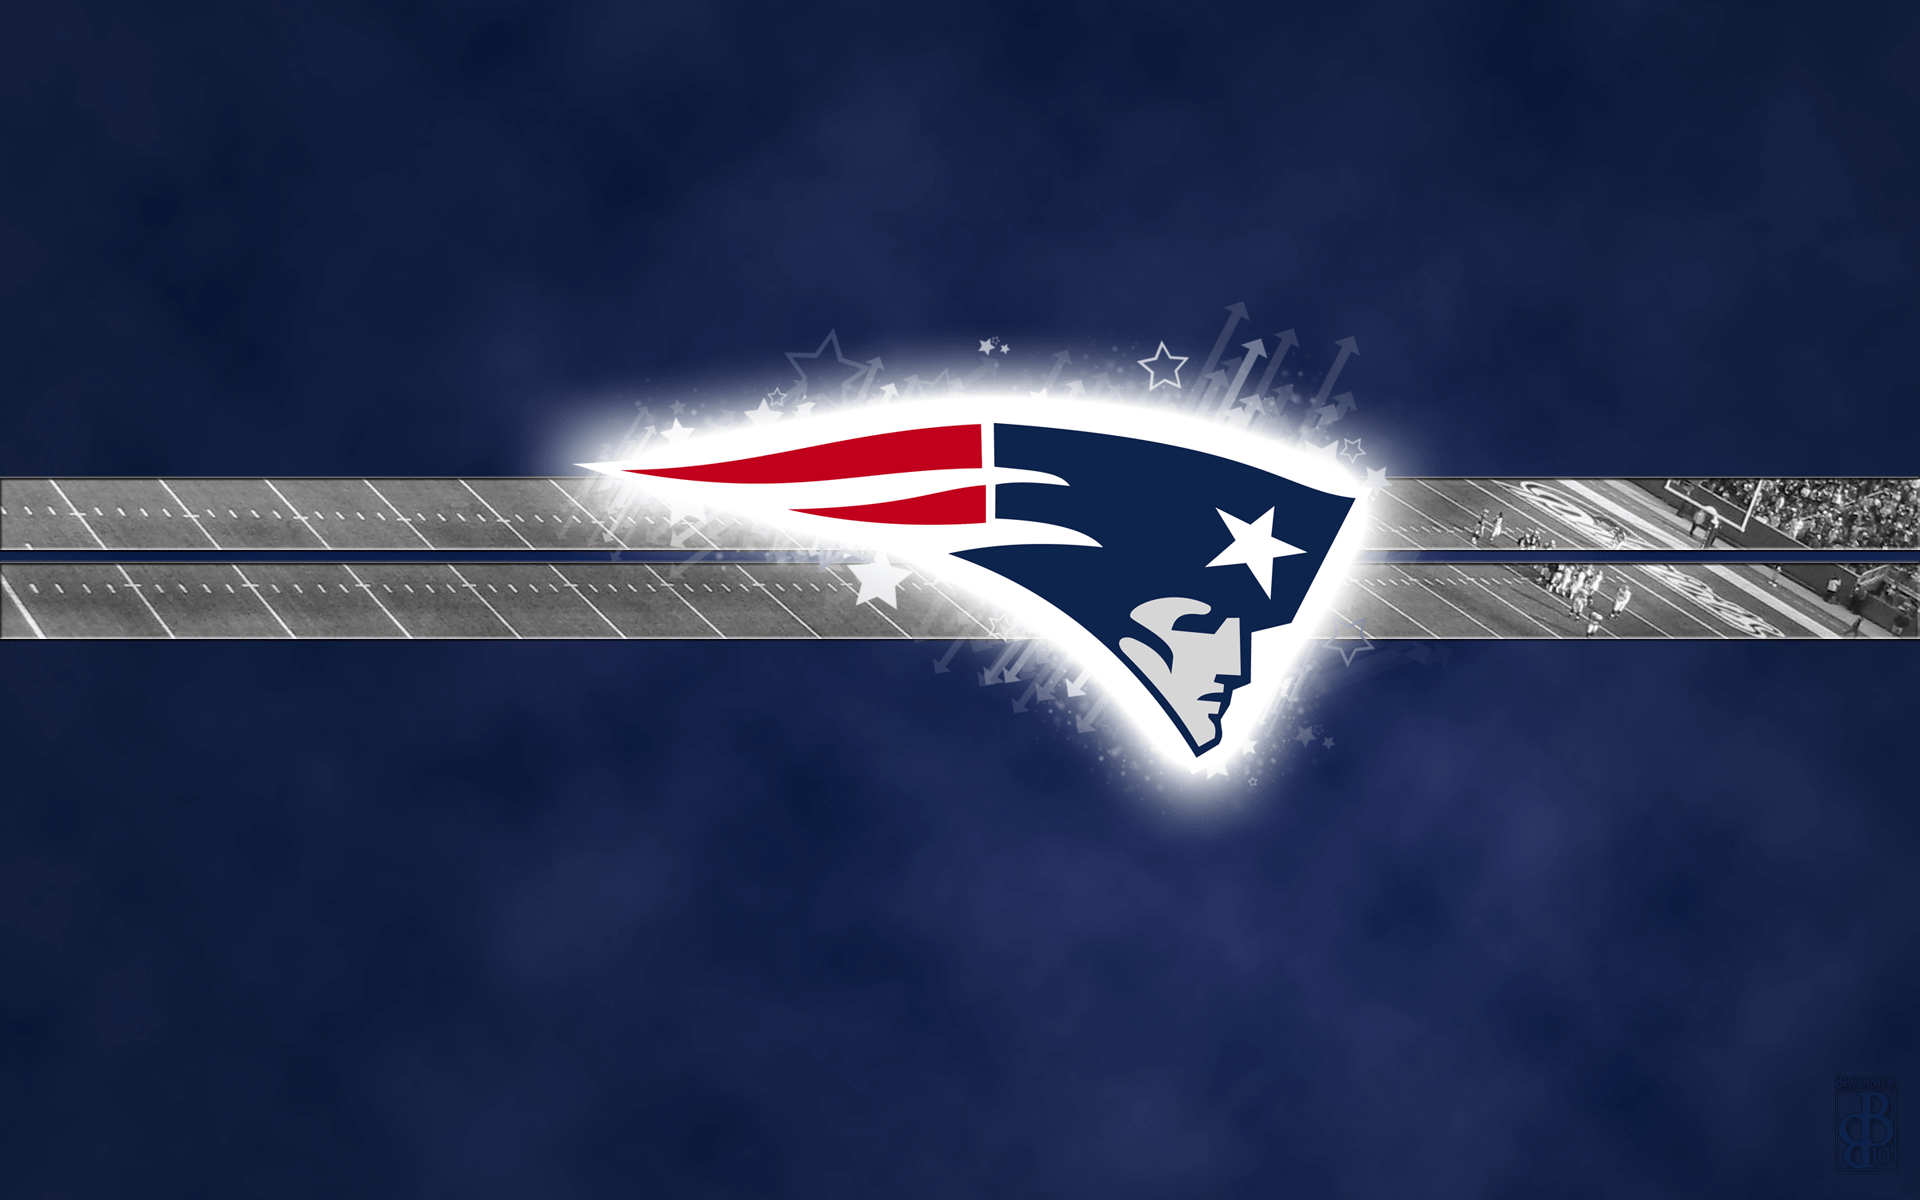 Patriots Logo Wallpaper